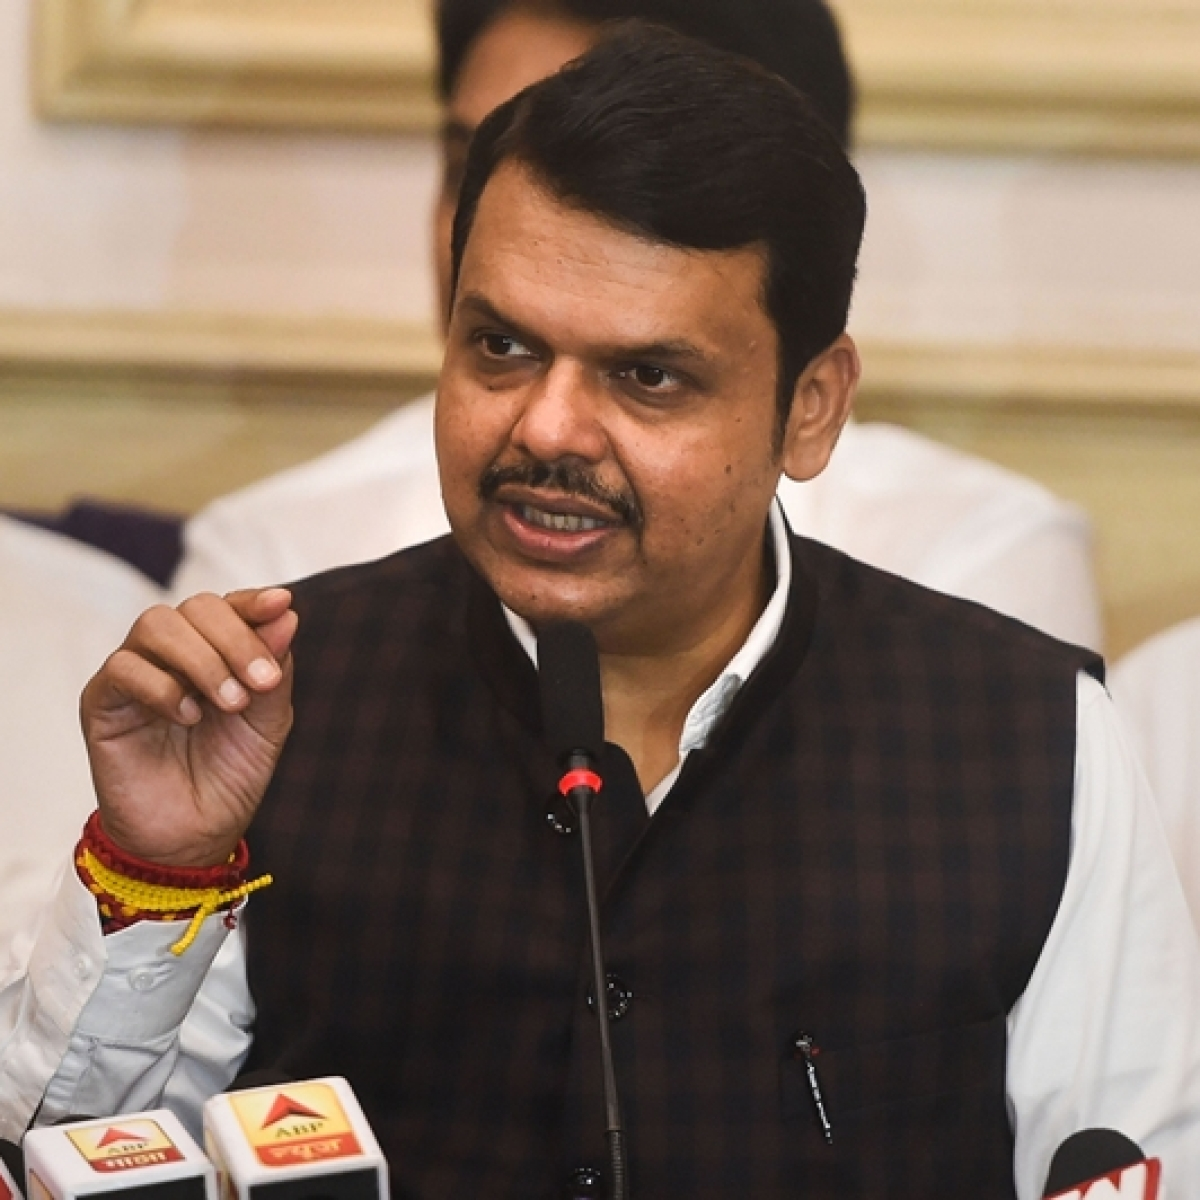 'Not interested in change of govt...': Devendra Fadnavis urges CM Thackeray to 'take bold decisions' amid COVID-19 outbreak